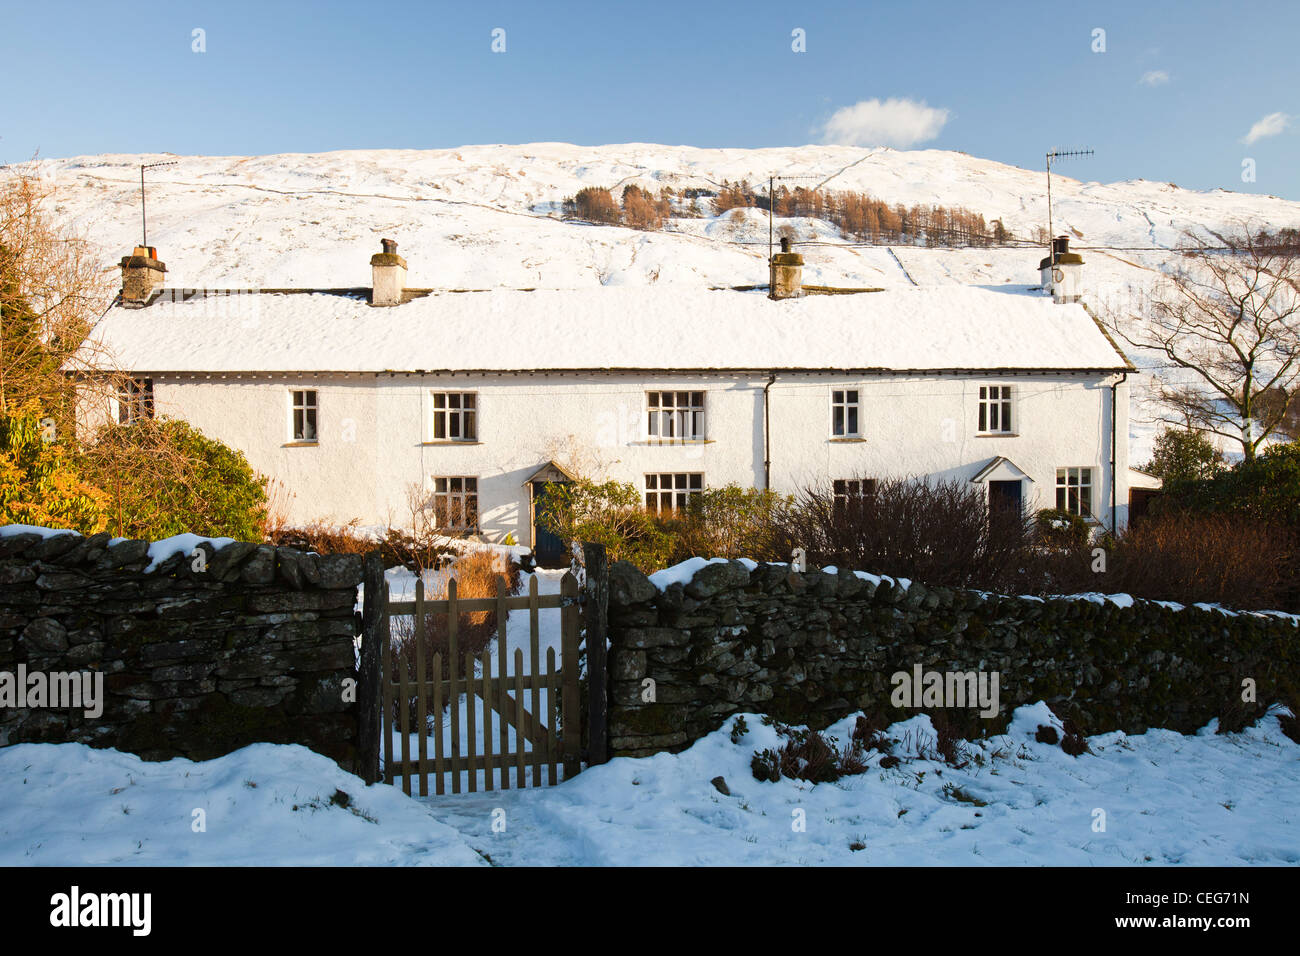 Old cottages in Troutbeck village in the Lake District, UK. - Stock Image